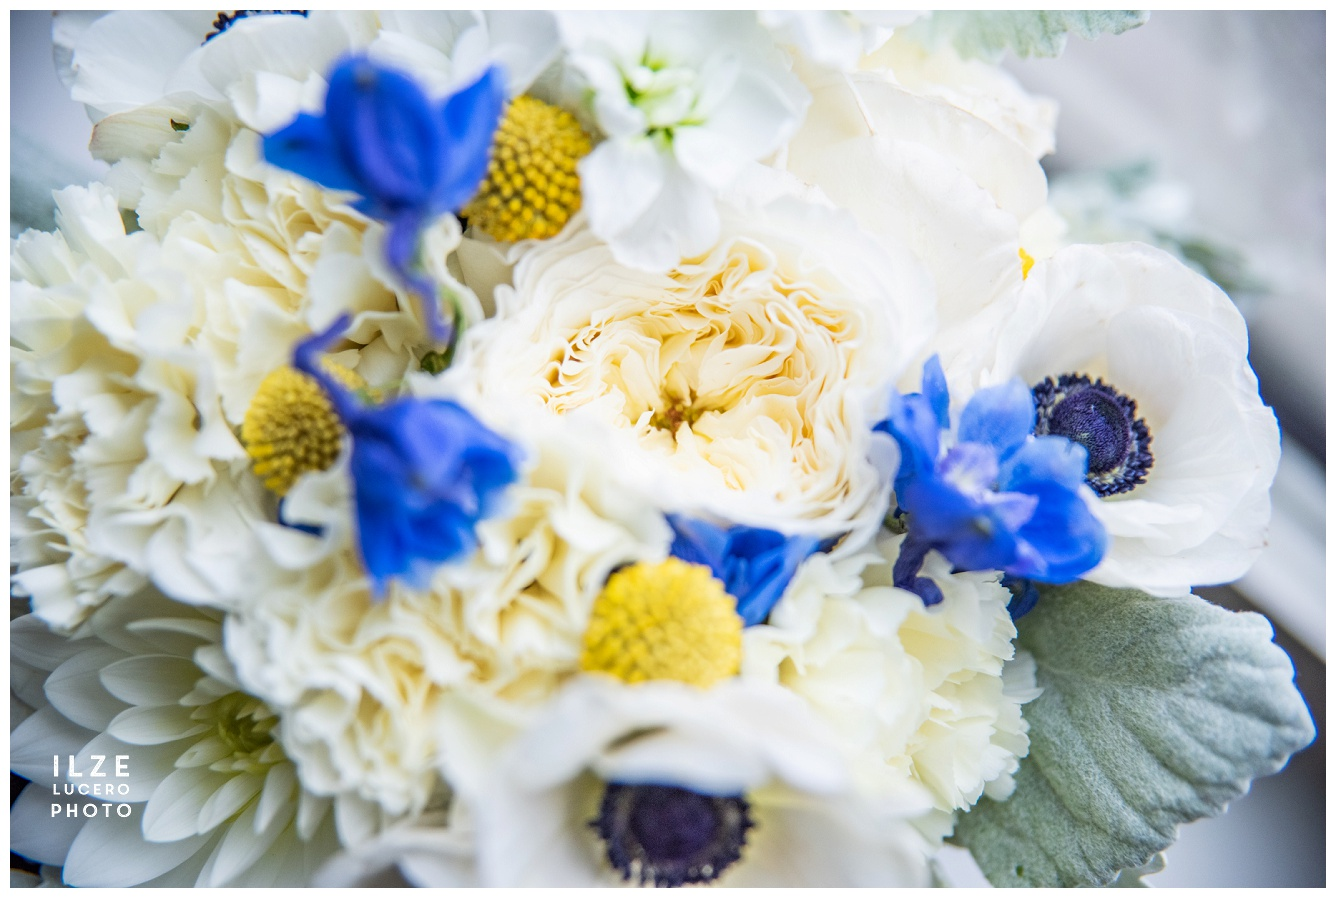 Wedding bouquet -  yellow and blue with garden roses, billy balls and anemones